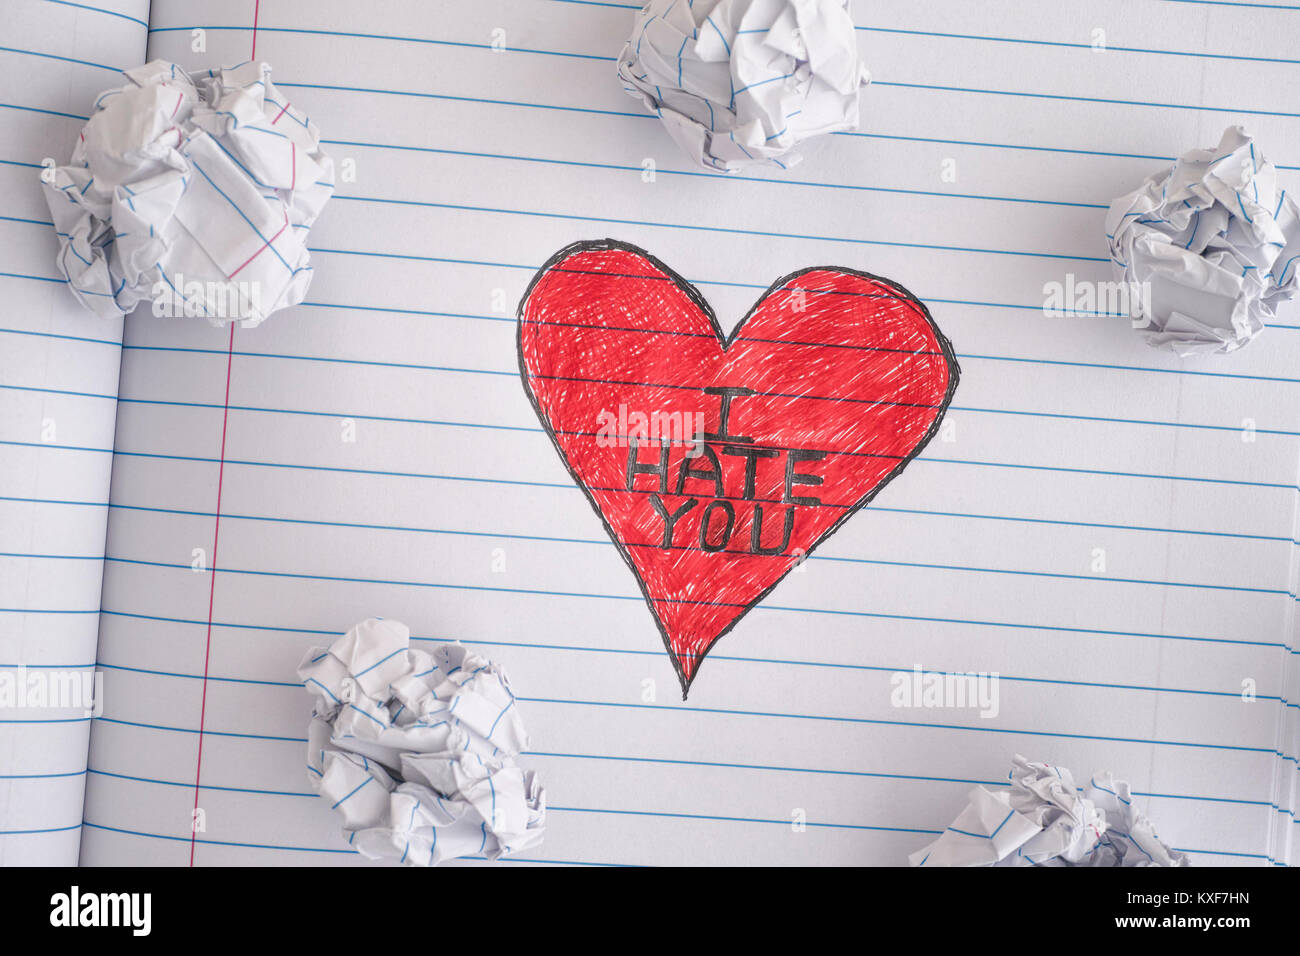 I Hate You. Red Heart with phrase I Hate You on notebook sheet with some crumpled paper balls on it. Close up. - Stock Image